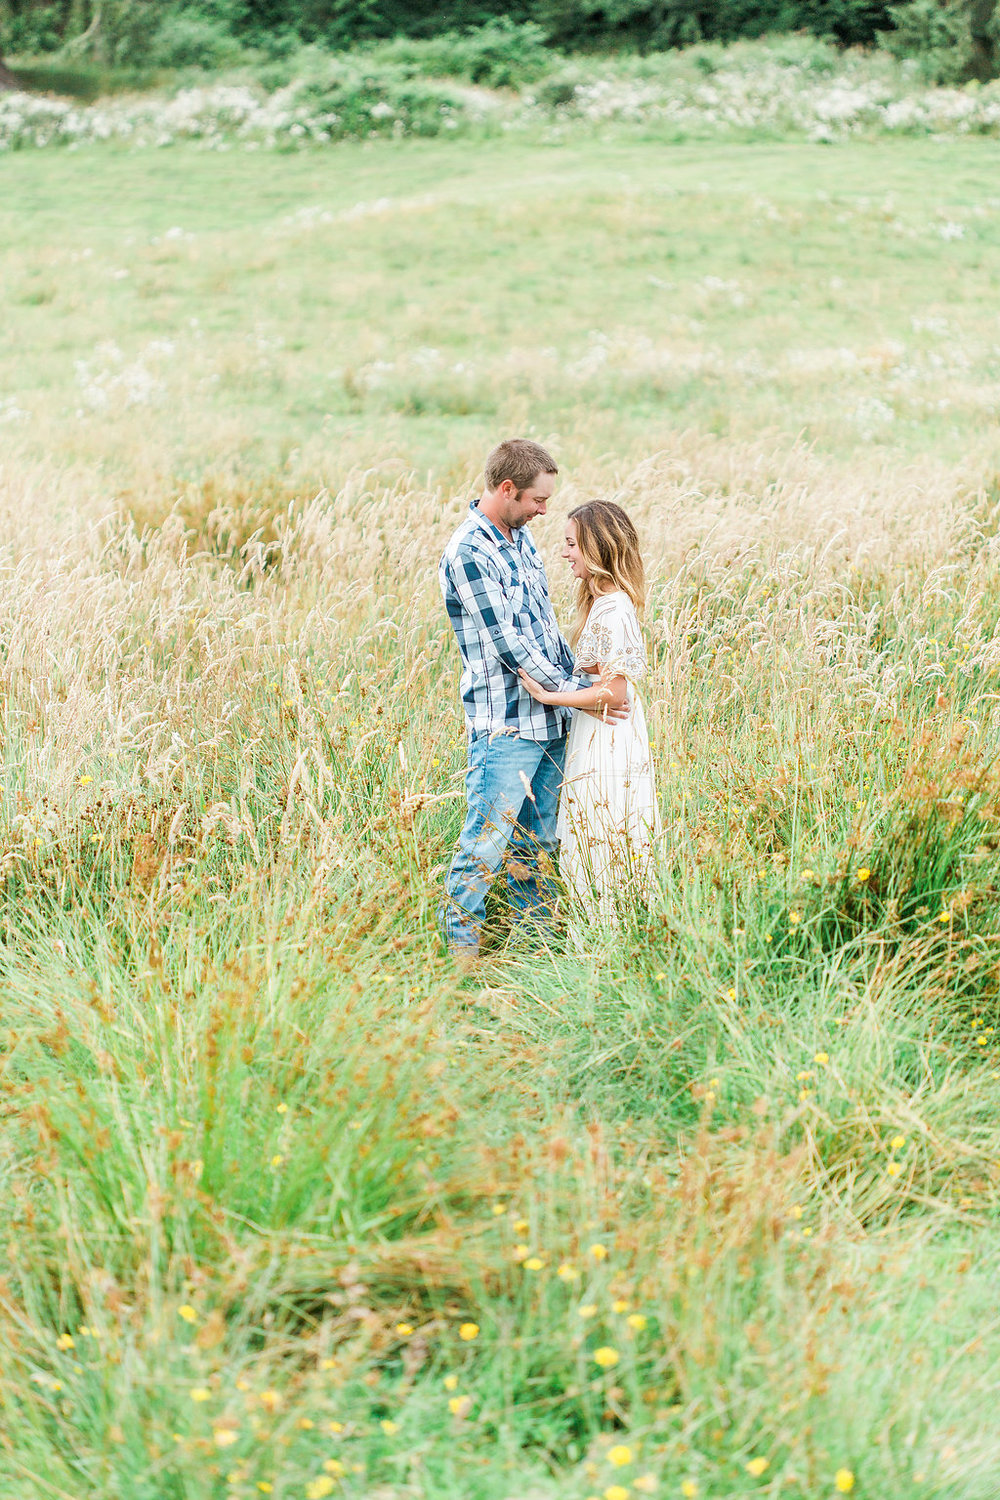 Beautiful outdoor engagement session | What to wear | Photo Inspiration | Engagement session | Portrait | White | Detail Shots | Mastin Labs | Engaged | Fuji 400 | Beautiful Couple | Couple in Love | Beautiful posing | Hair Piece for Photo Session | Engaged to be Married